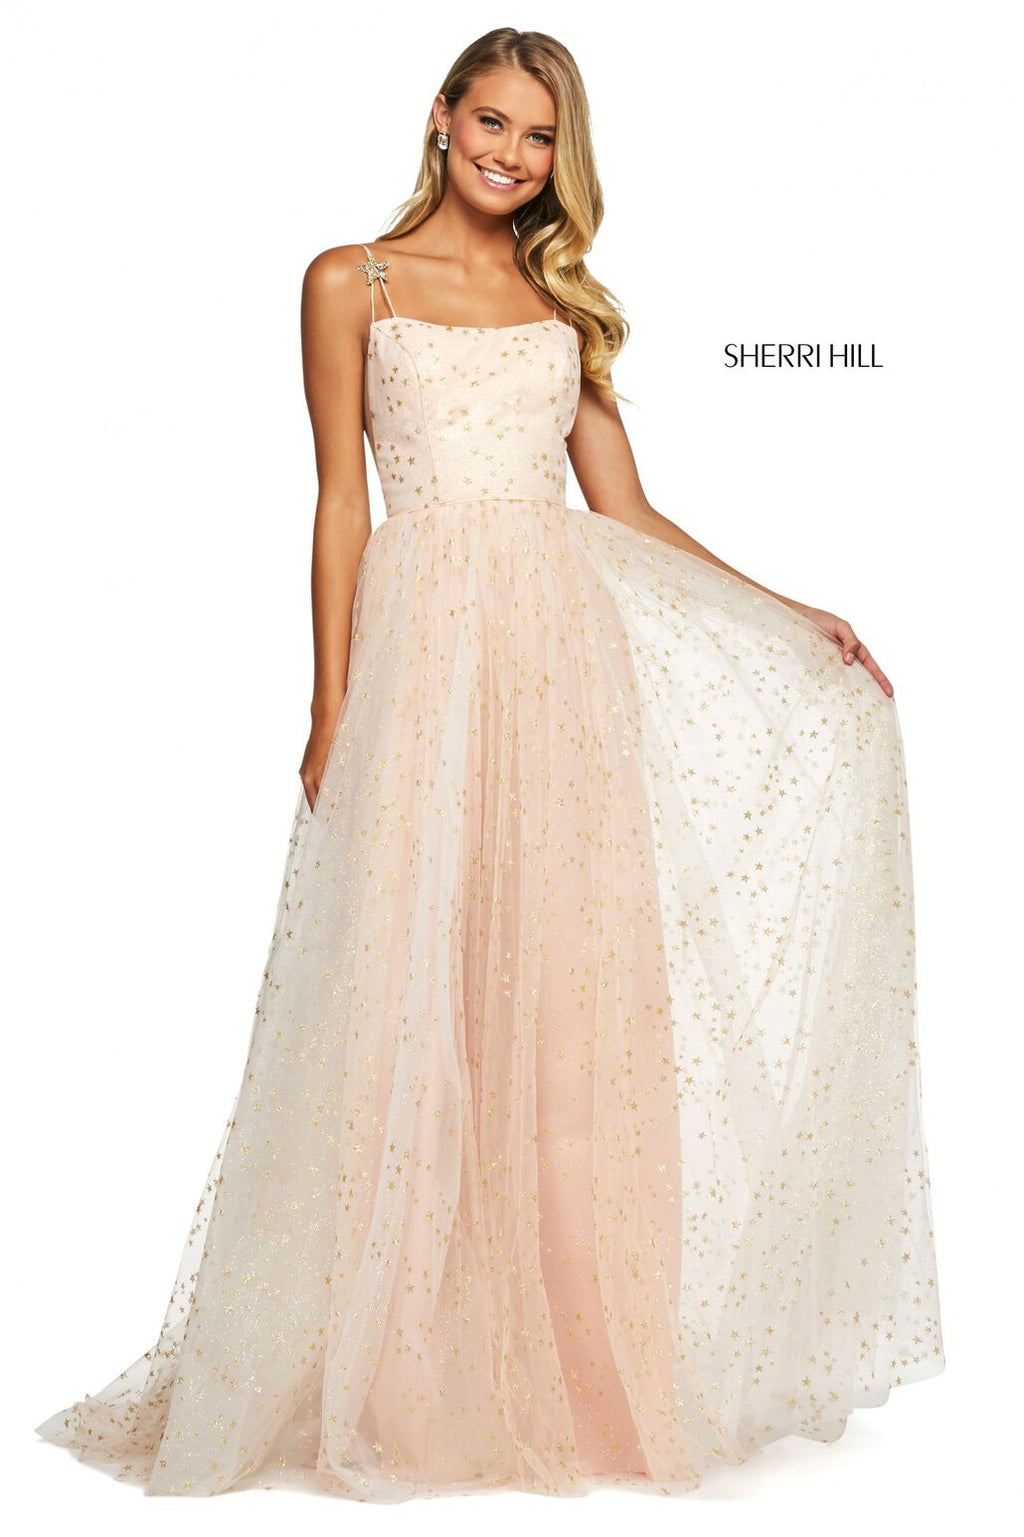 This Sherri Hill A-line gown in blush/gold features glitter, a straight neckline, and jeweled star embellishments on the spaghetti straps.